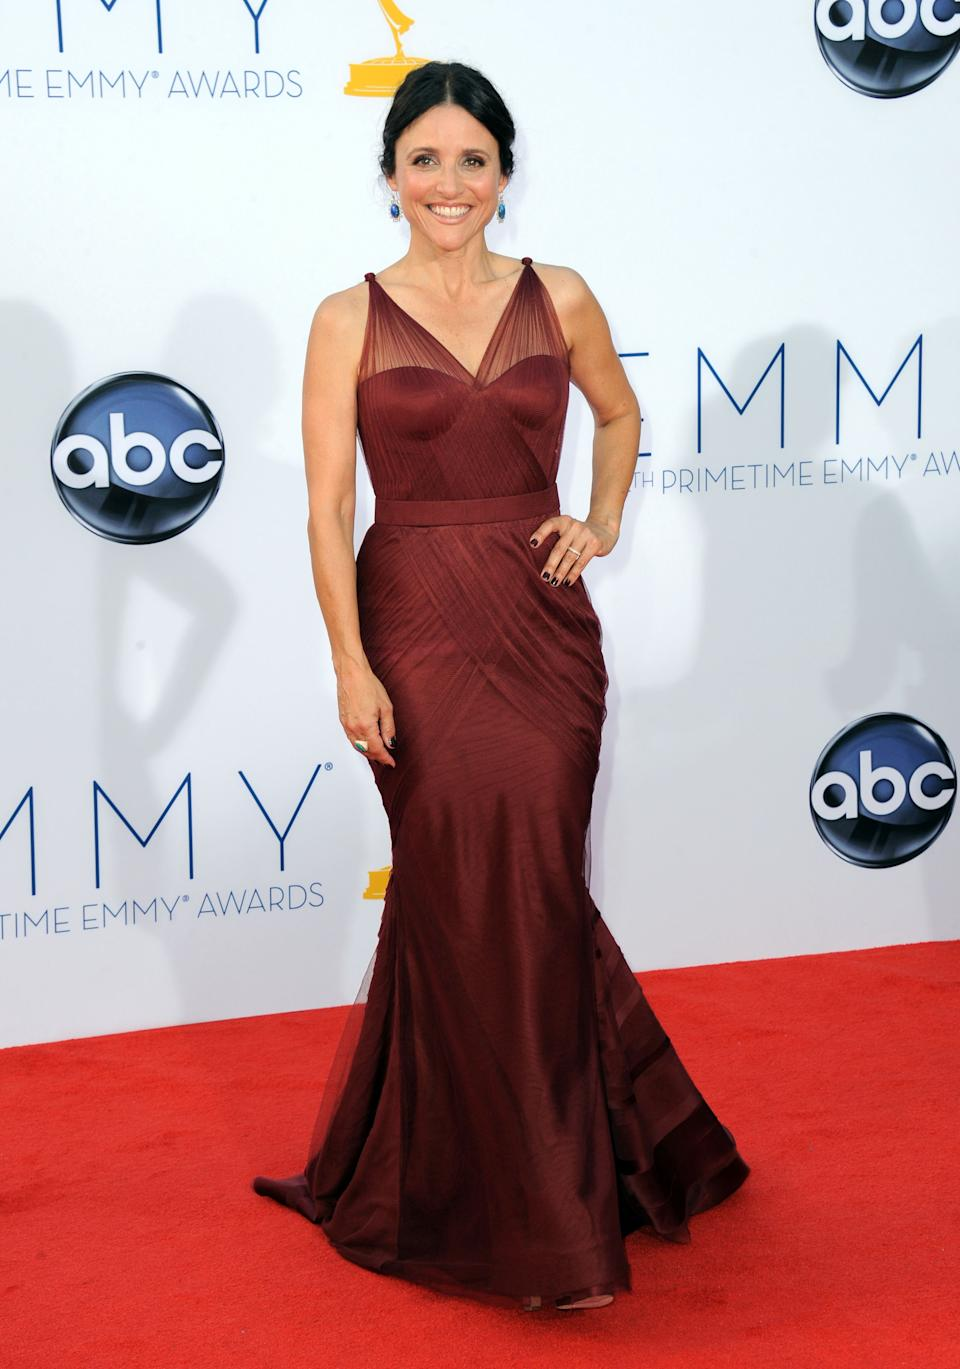 Actress Julia Louis-Dreyfus arrives at the 64th Primetime Emmy Awards at the Nokia Theatre on Sunday, Sept. 23, 2012, in Los Angeles.  (Photo by Jordan Strauss/Invision/AP)